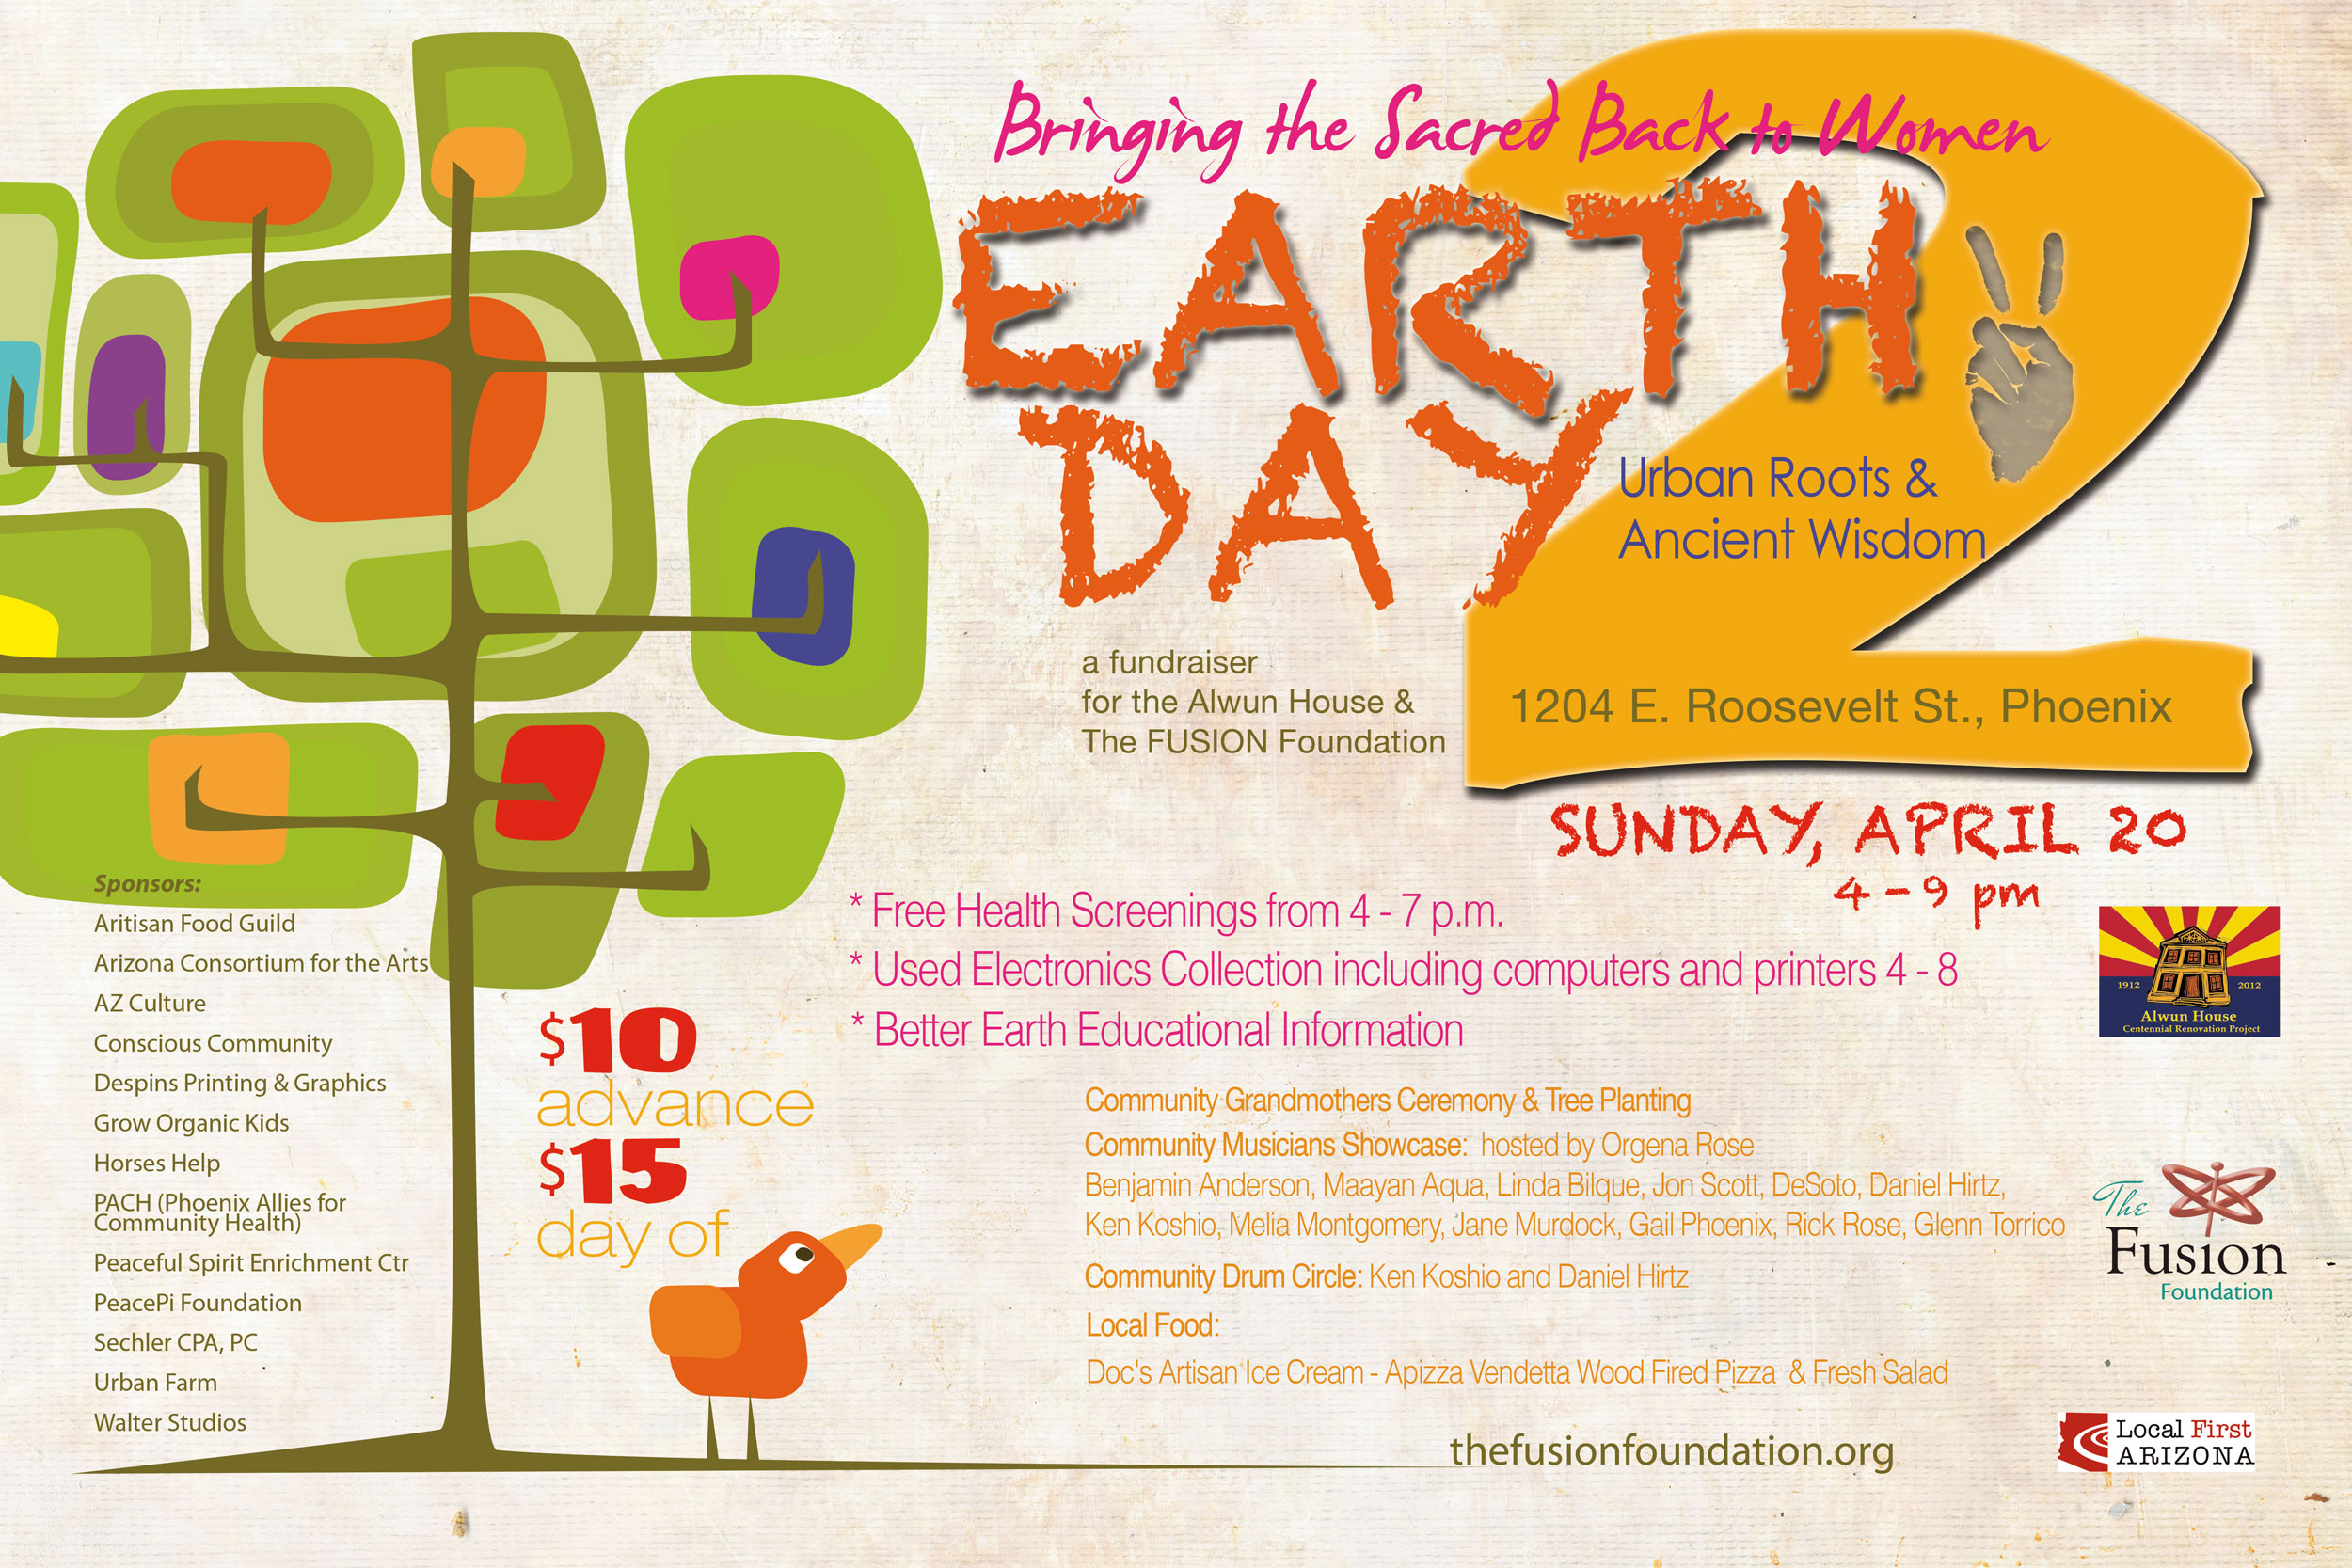 Earth Day 2014 Urban Roots Ancient Wisdom